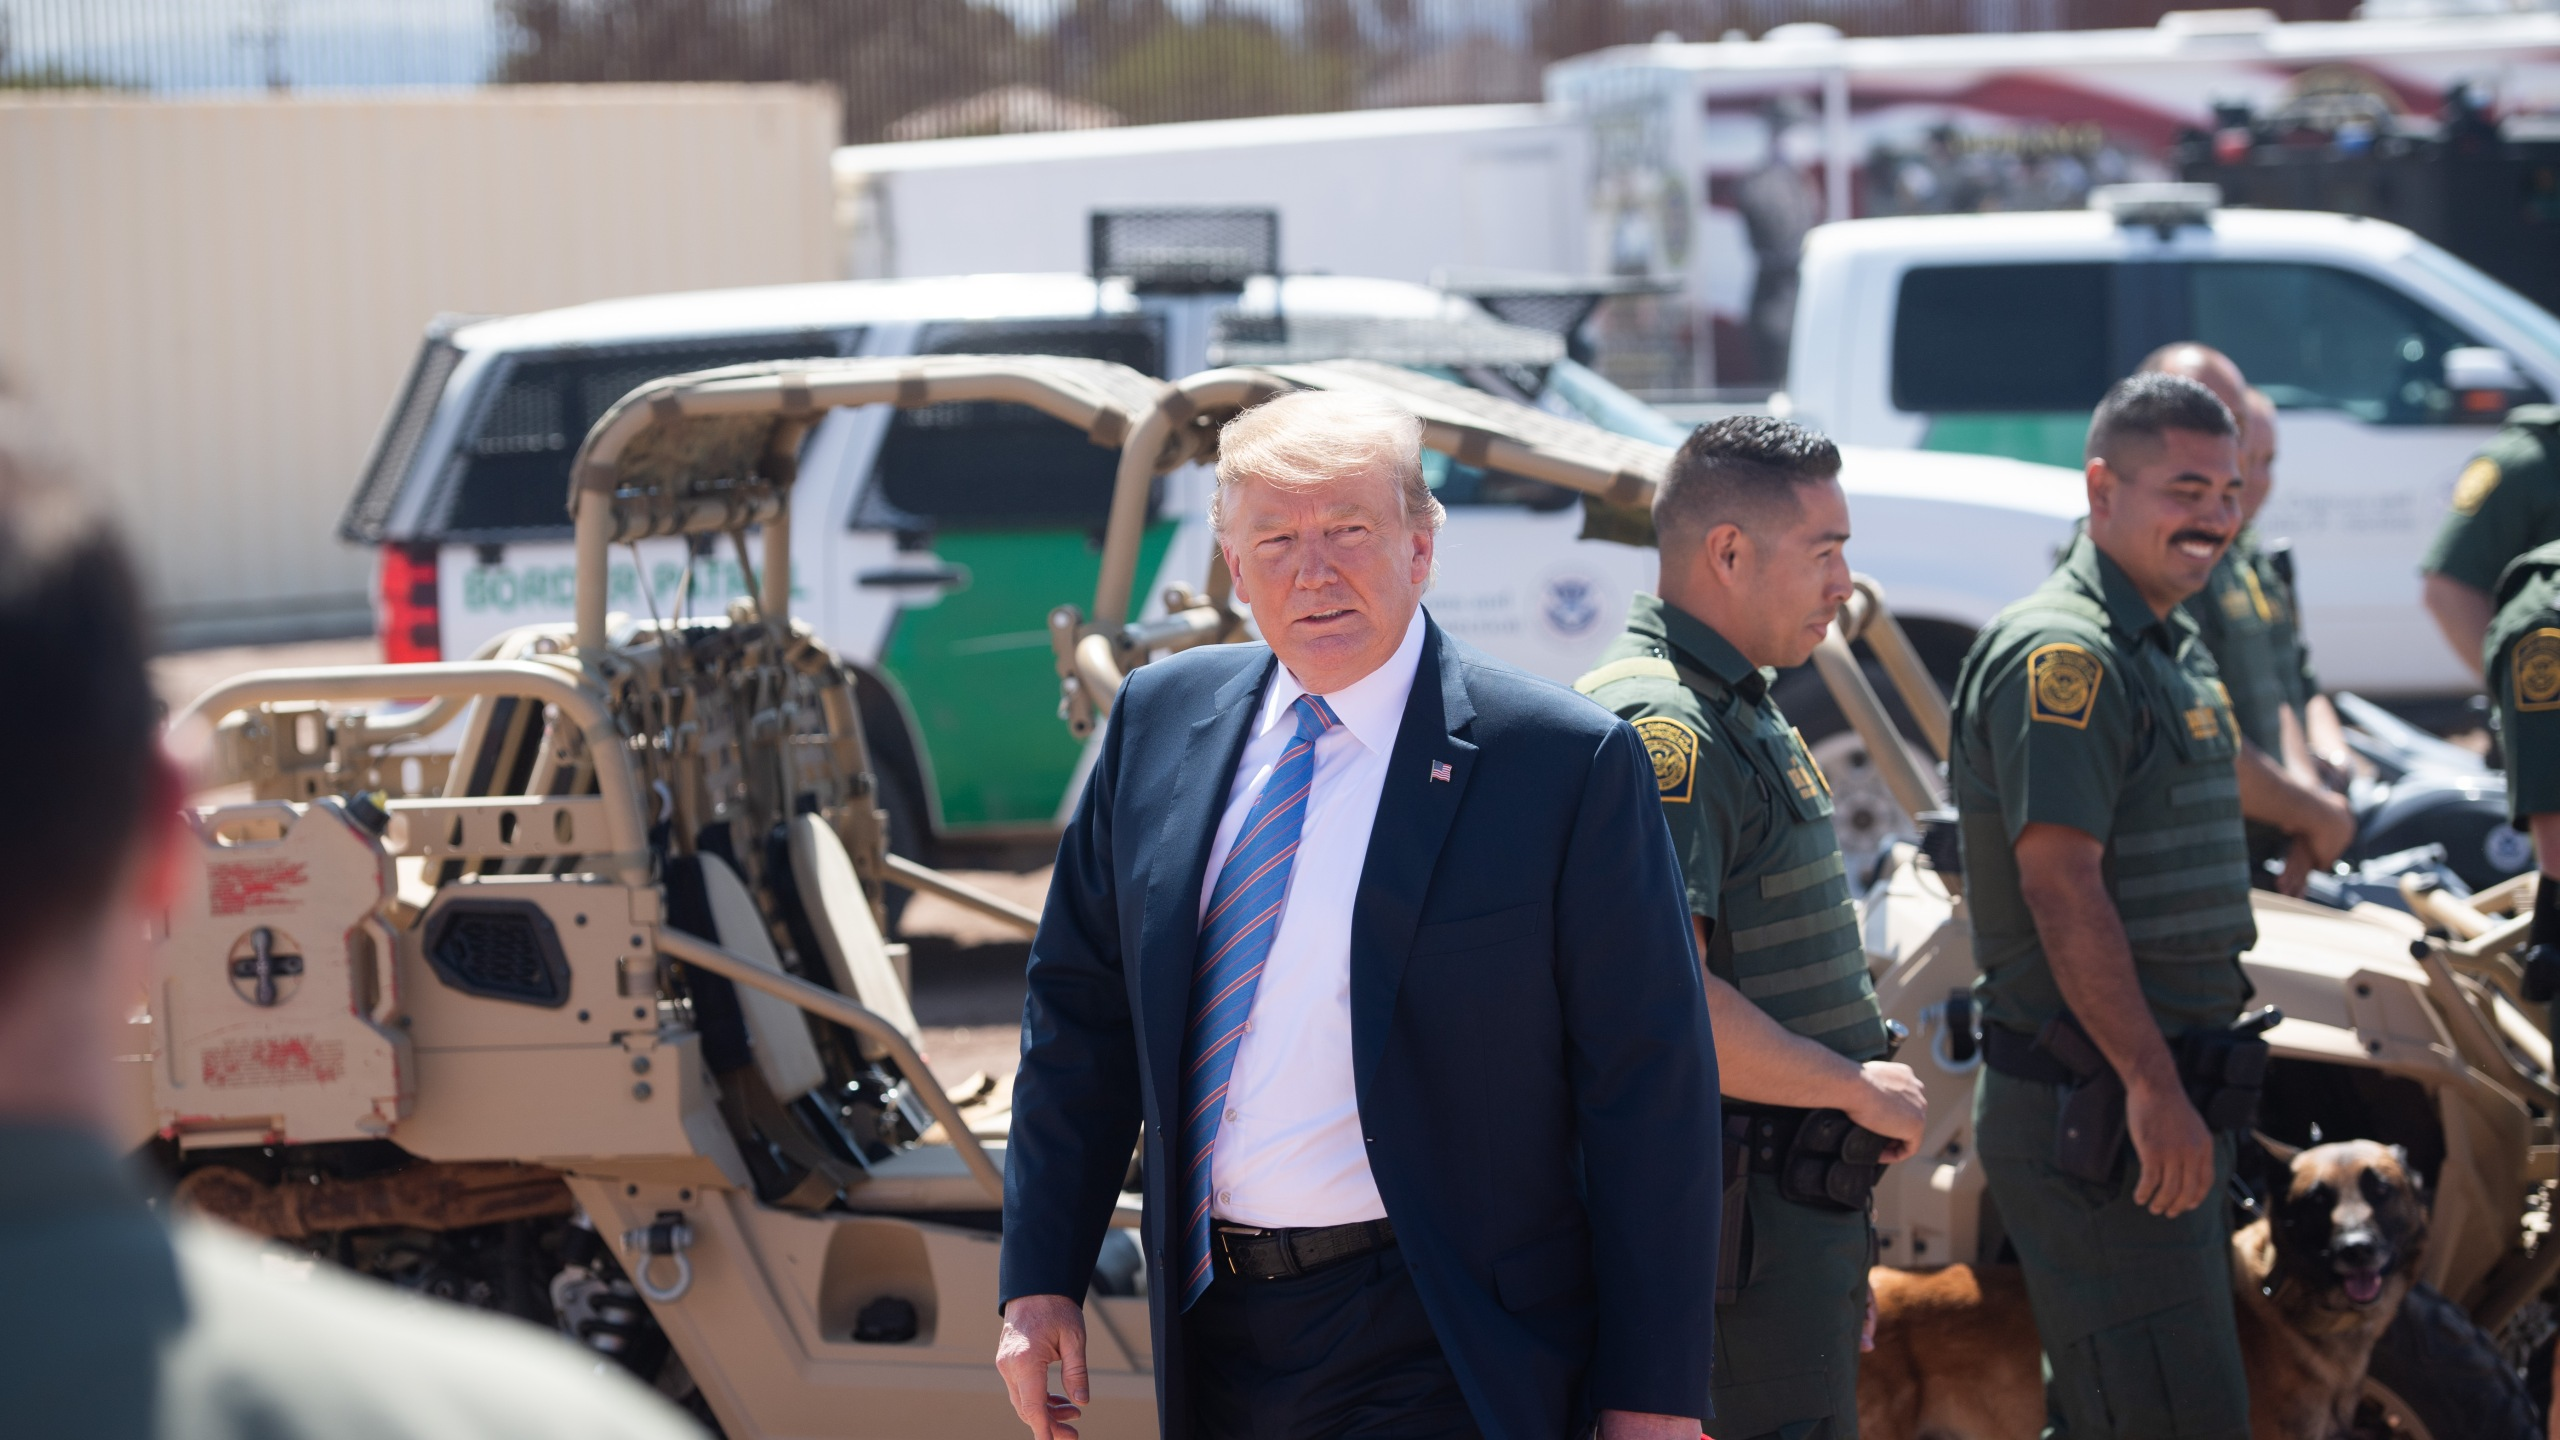 President Donald Trump speaks with members of the U.S. Border Patrol as he tours the border wall between the U.S. and Mexico in Calexico on April 5, 2019. (Credit: Saul Loeb / AFP / Getty Images)